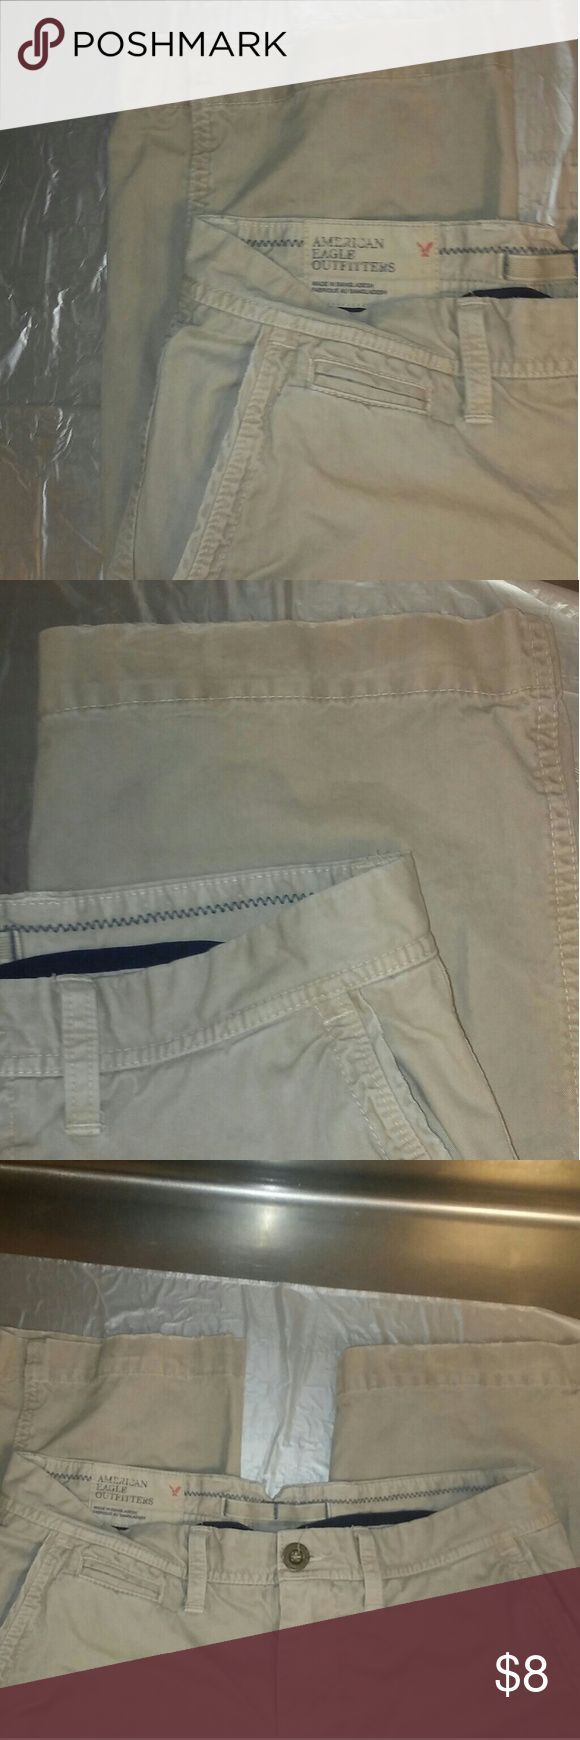 American Eagle 32x34 Khaki Style Pants! Good shape. Not excellent but good. Cheap pair of pants. 32 waist. 34 Length. American Eagle Outfitters Pants Chinos & Khakis